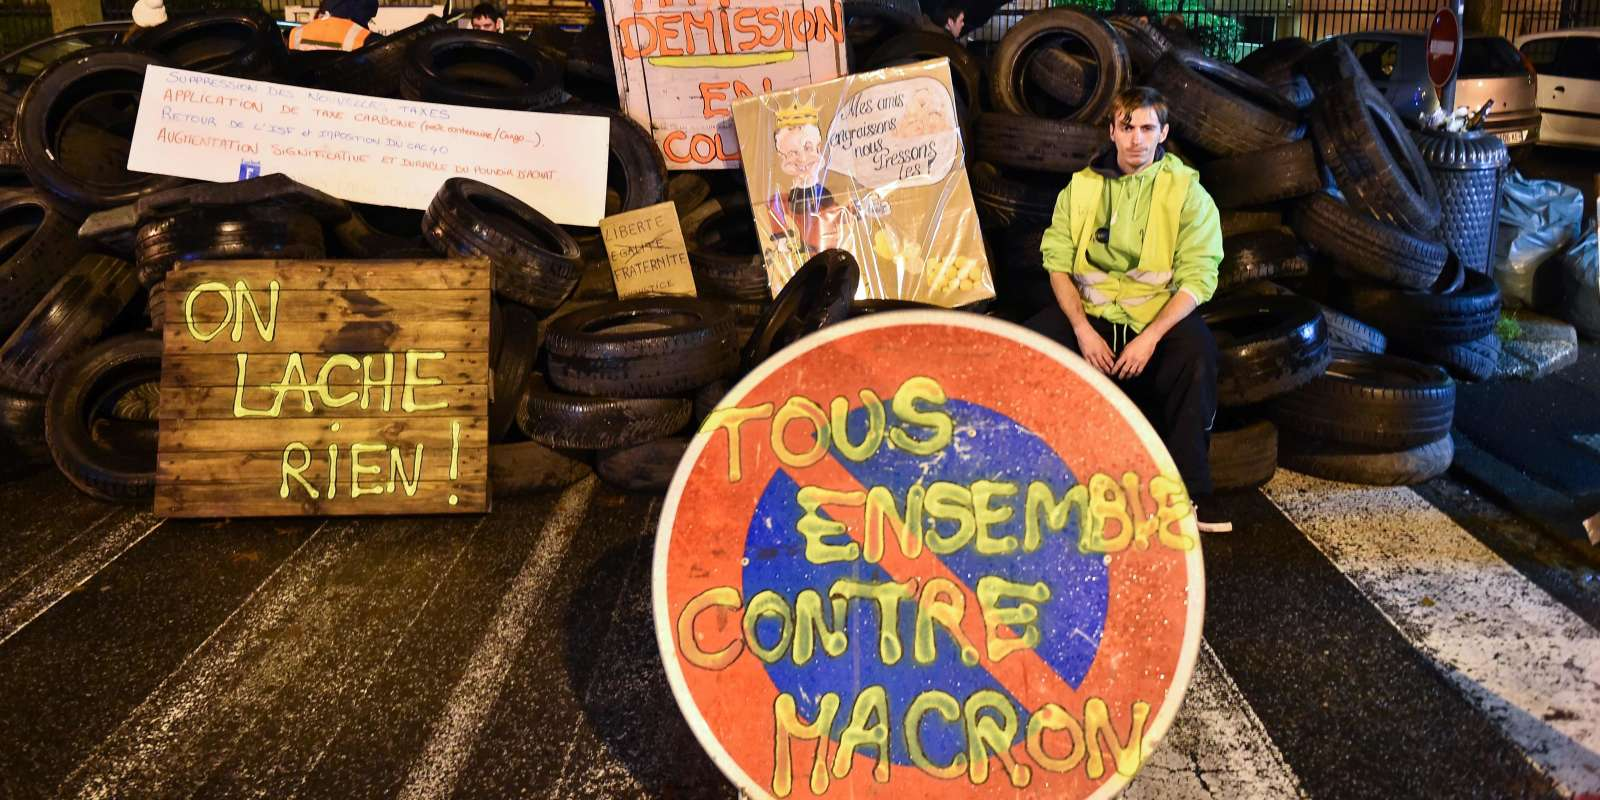 A demonstrator wearing a yellow vest (gilet jaune) sits on a barricade of tires, at the entrance of the Tax Office in Rennes, northwestern France, on December 2, 2018. Thousands took part in a third weekend of